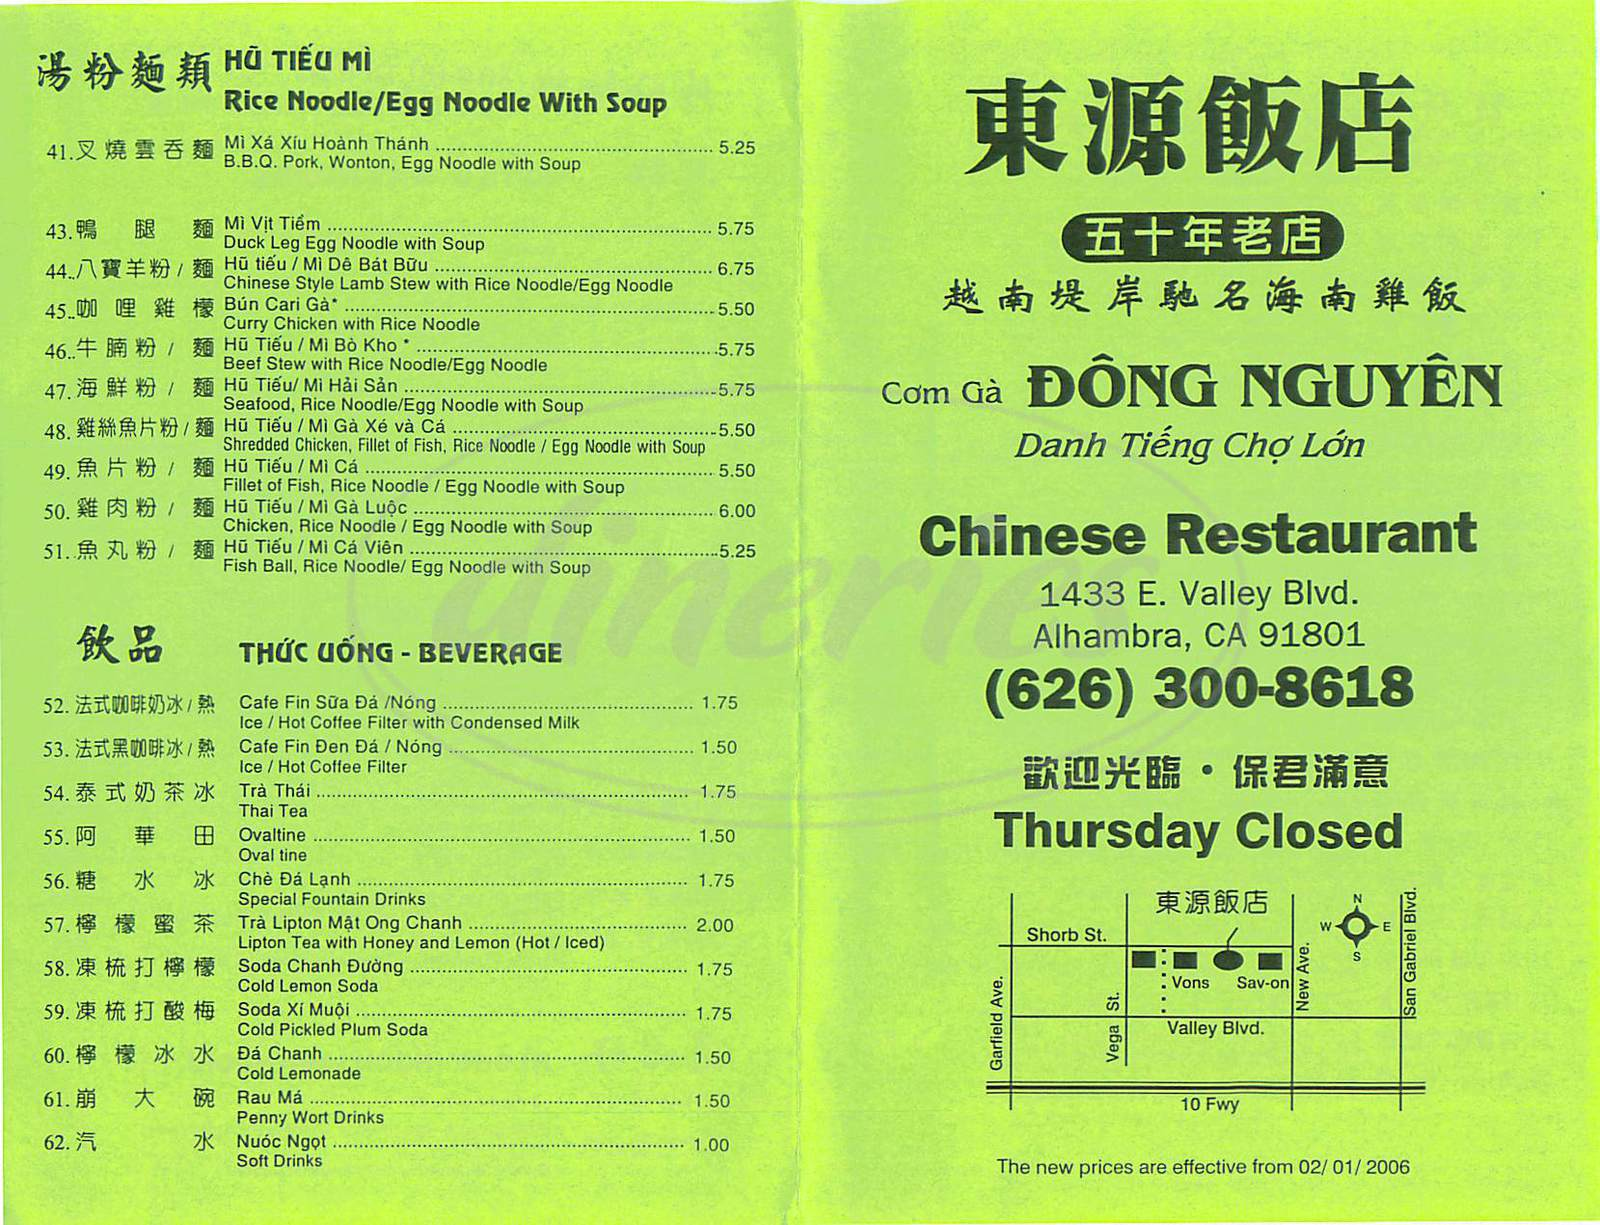 menu for Dong Nguyen Restaurant